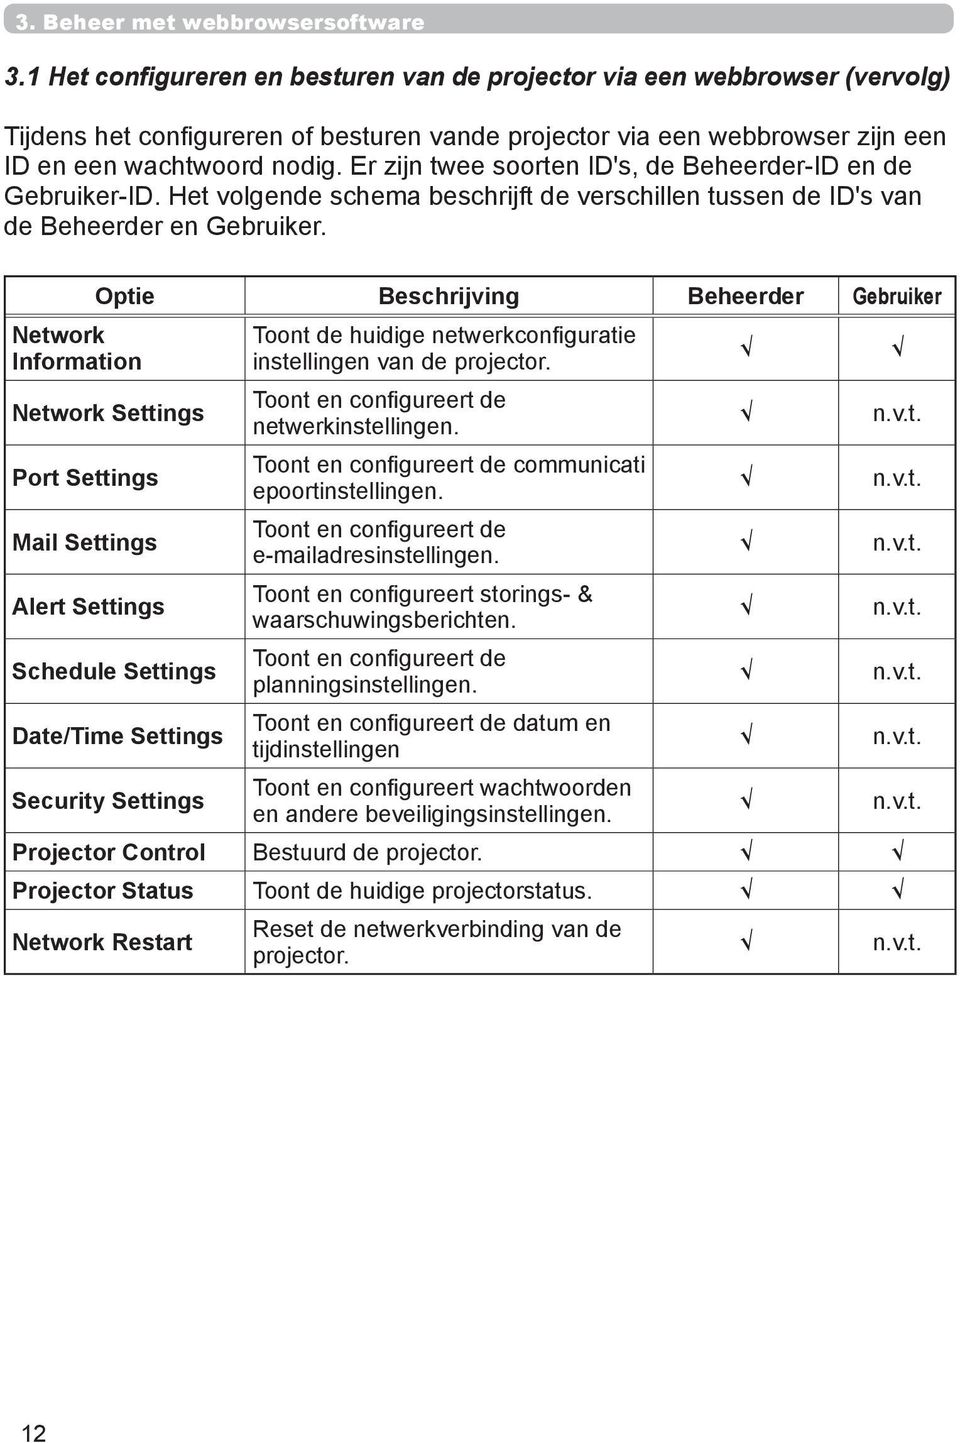 Network Information Optie Beschrijving Beheerder Gebruiker Network Settings Port Settings Mail Settings Alert Settings Schedule Settings Date/Time Settings Security Settings Toont de huidige